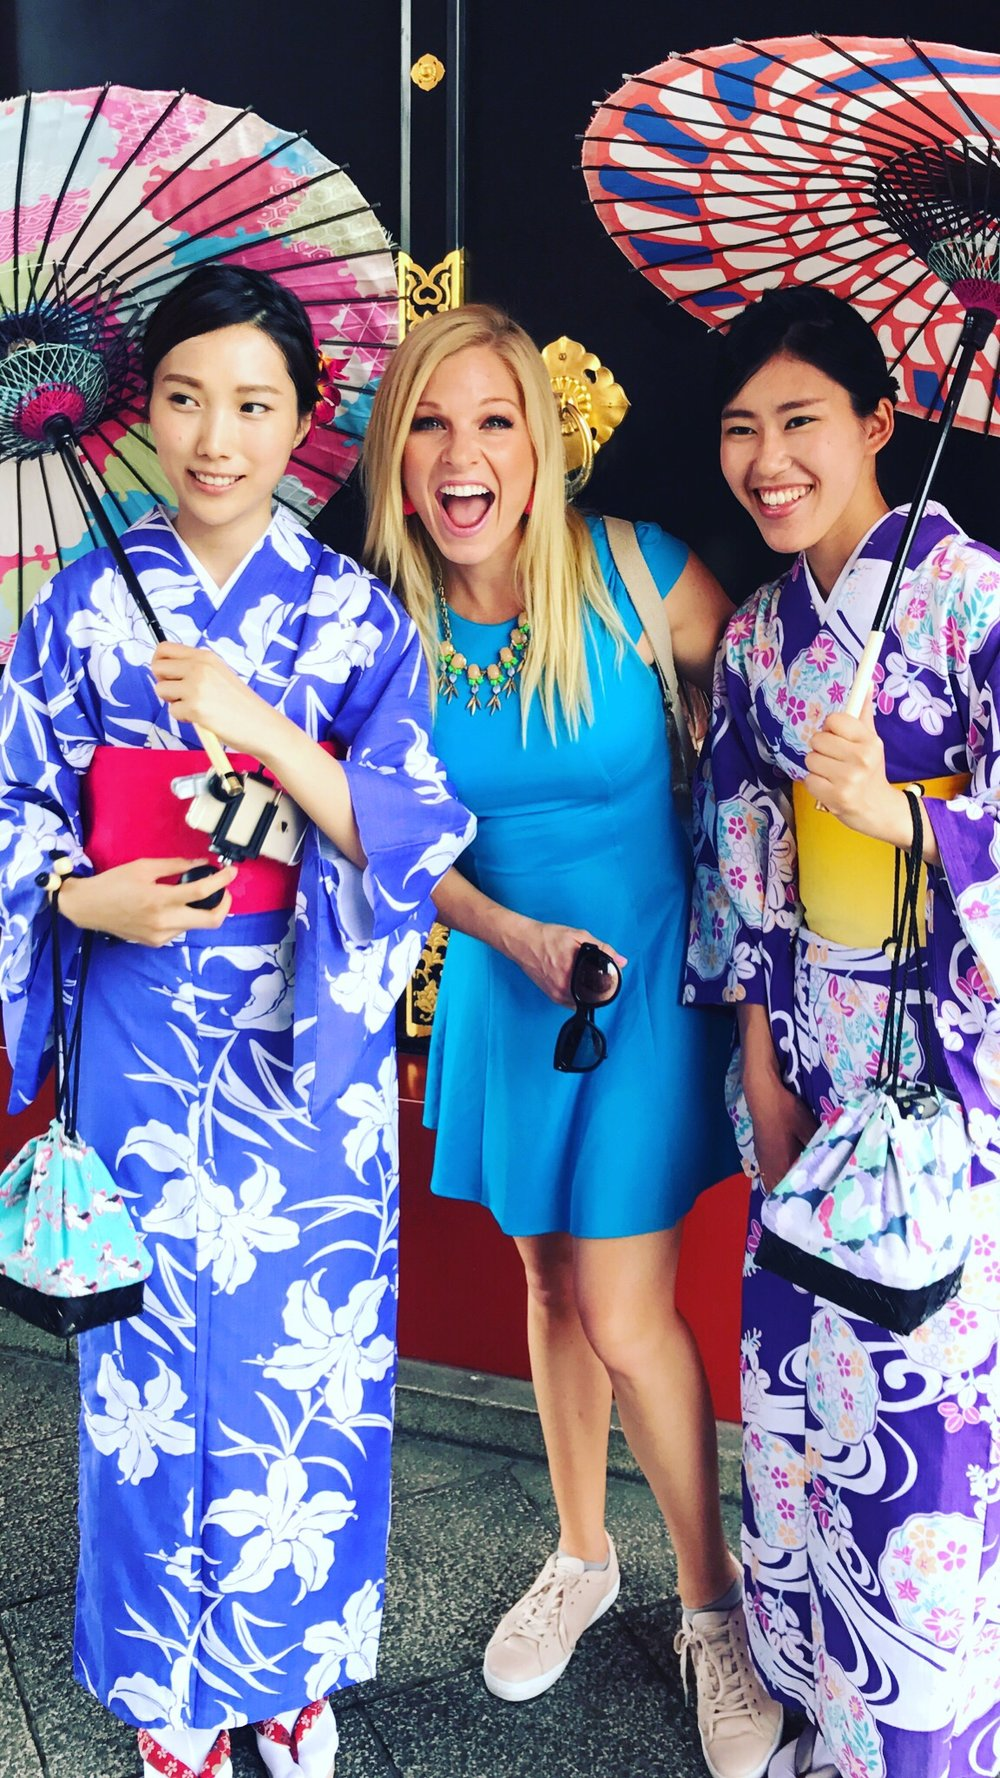 kimono japan kimonos japanese tokyo intercontinental anna kooiman annakooiman.com fitness travel lifestyle fashion where to stay in tokyo things to do in tokyo places to eat in tokyo best hotel in tokyo fitness travel lifestyle fashion television